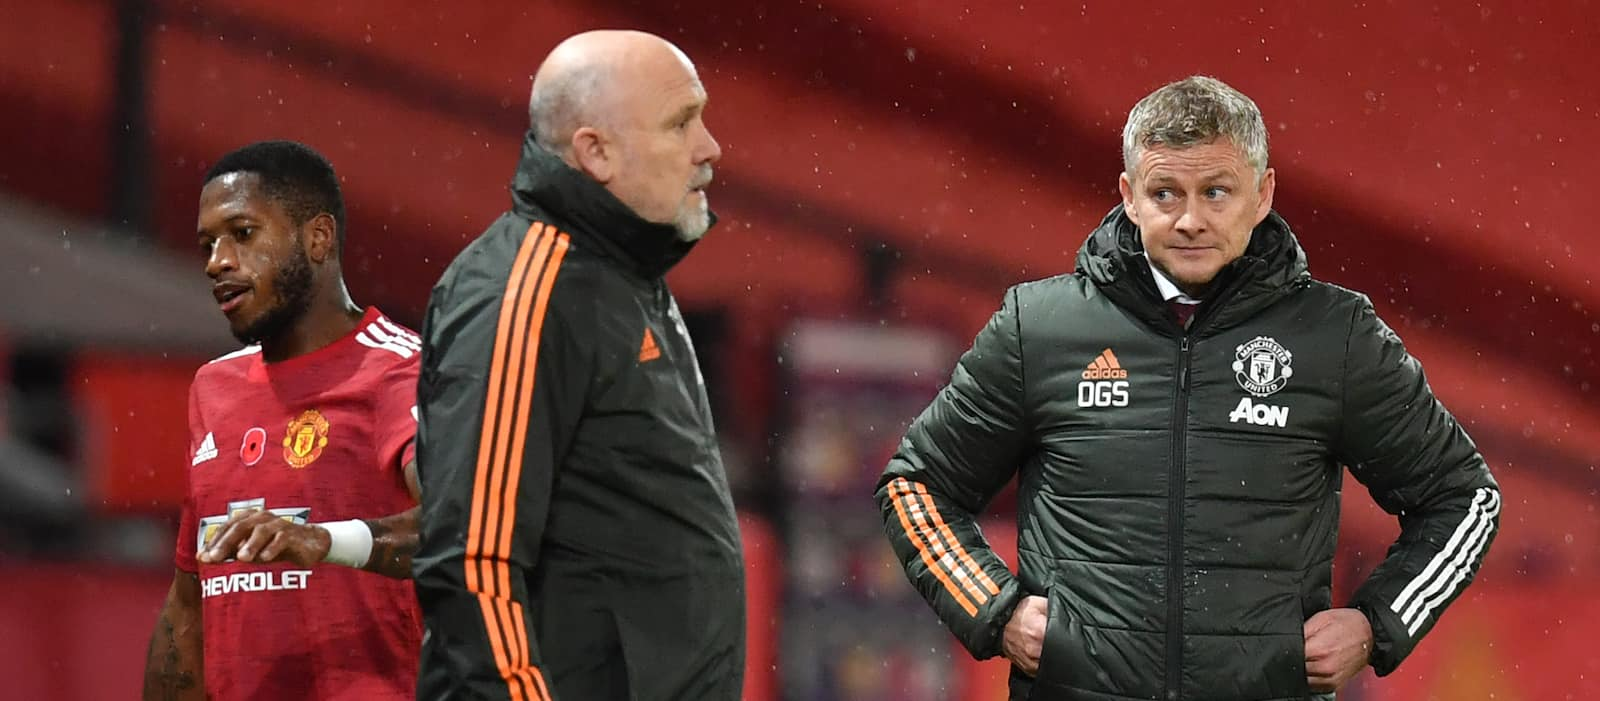 Ole Gunnar Solskjaer needs to demonstrate stronger leadership